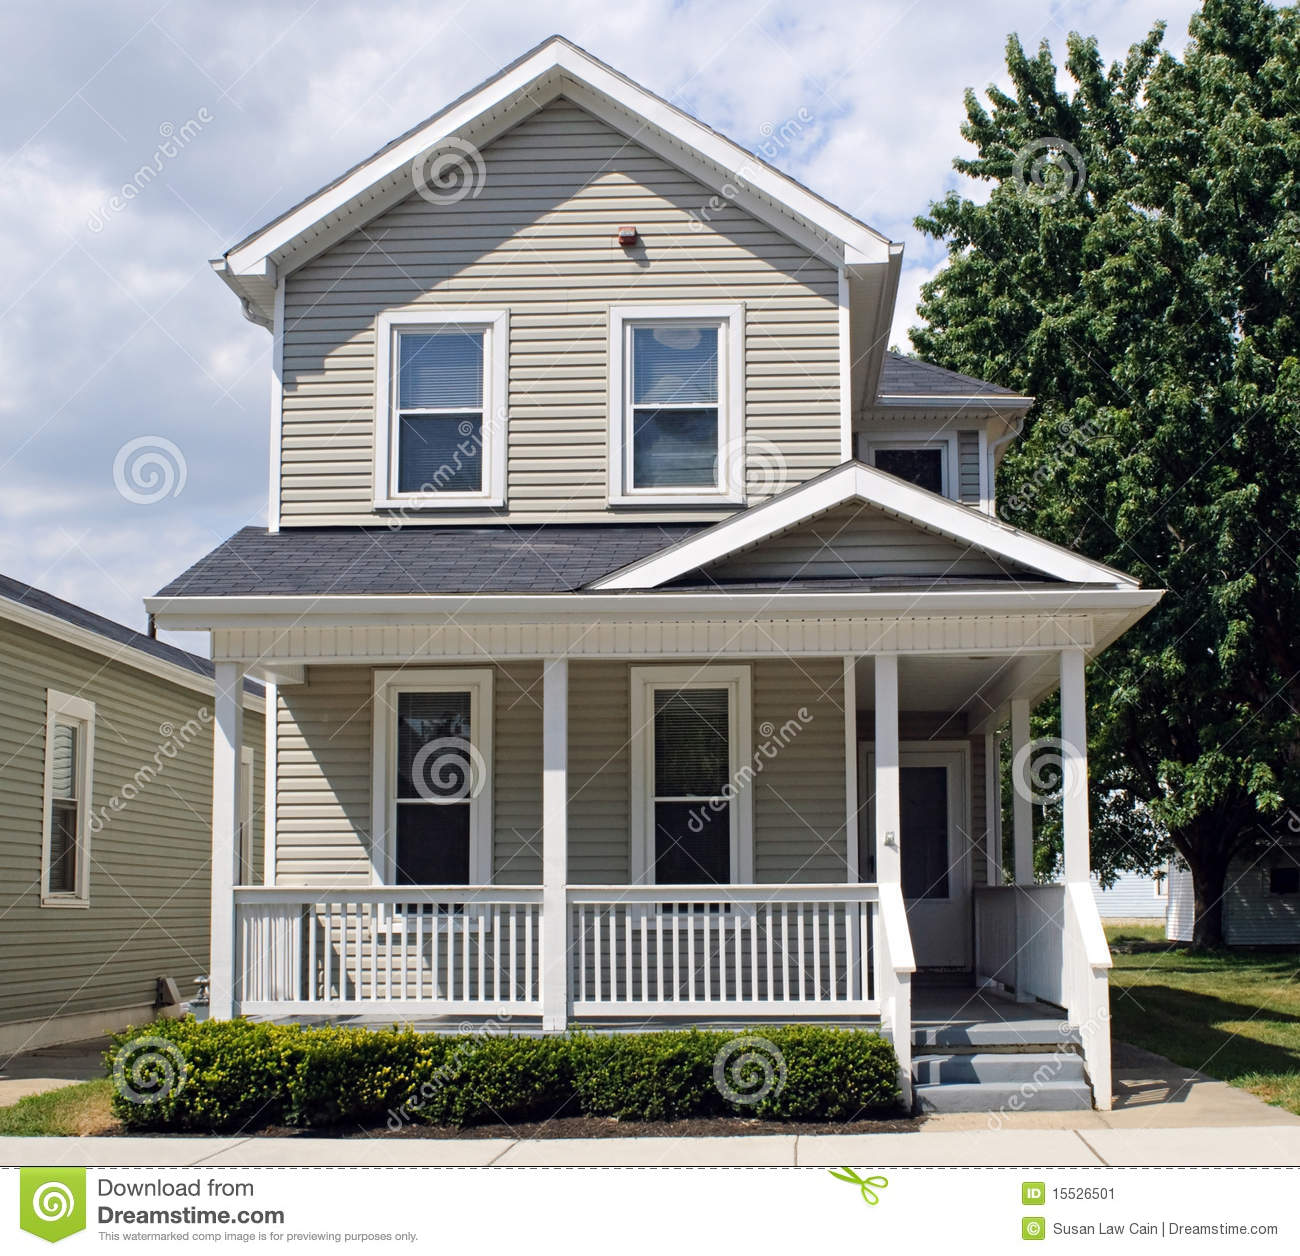 Tan House With Porch Stock Image - Image: 15526501